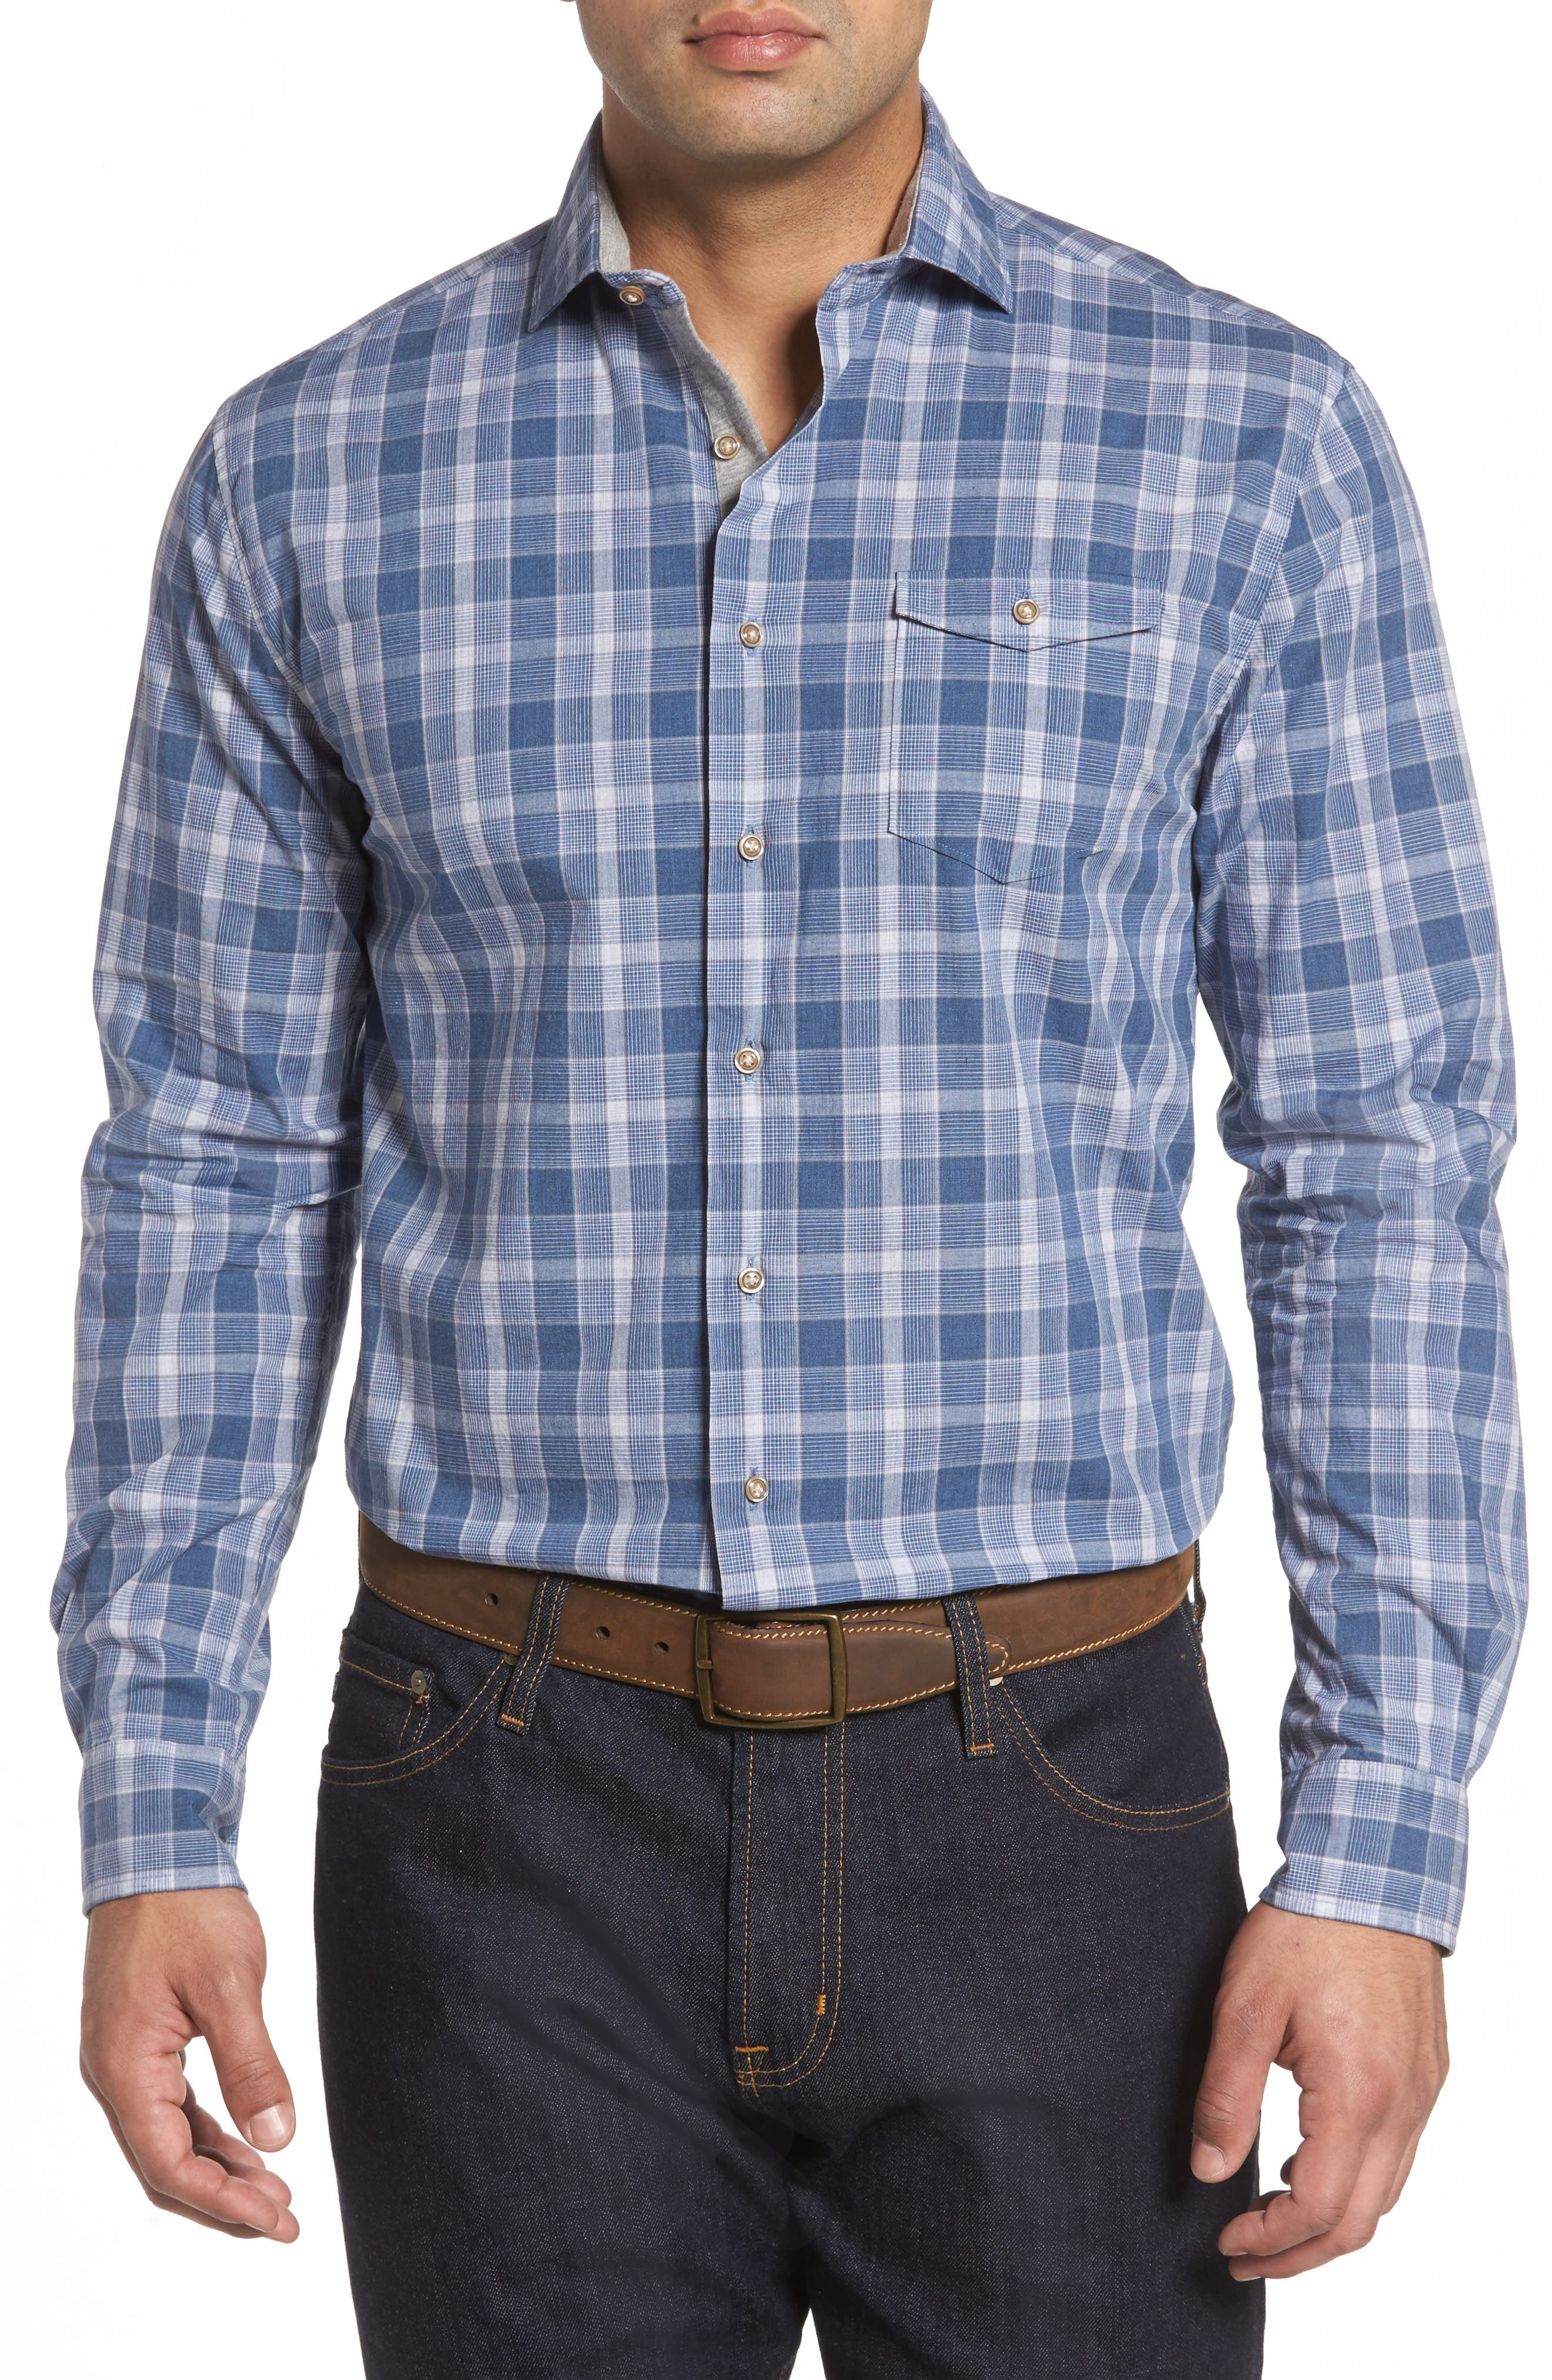 Highlands Classic Fit Plaid Sport Shirt,                             Main thumbnail 1, color,                             Abyss